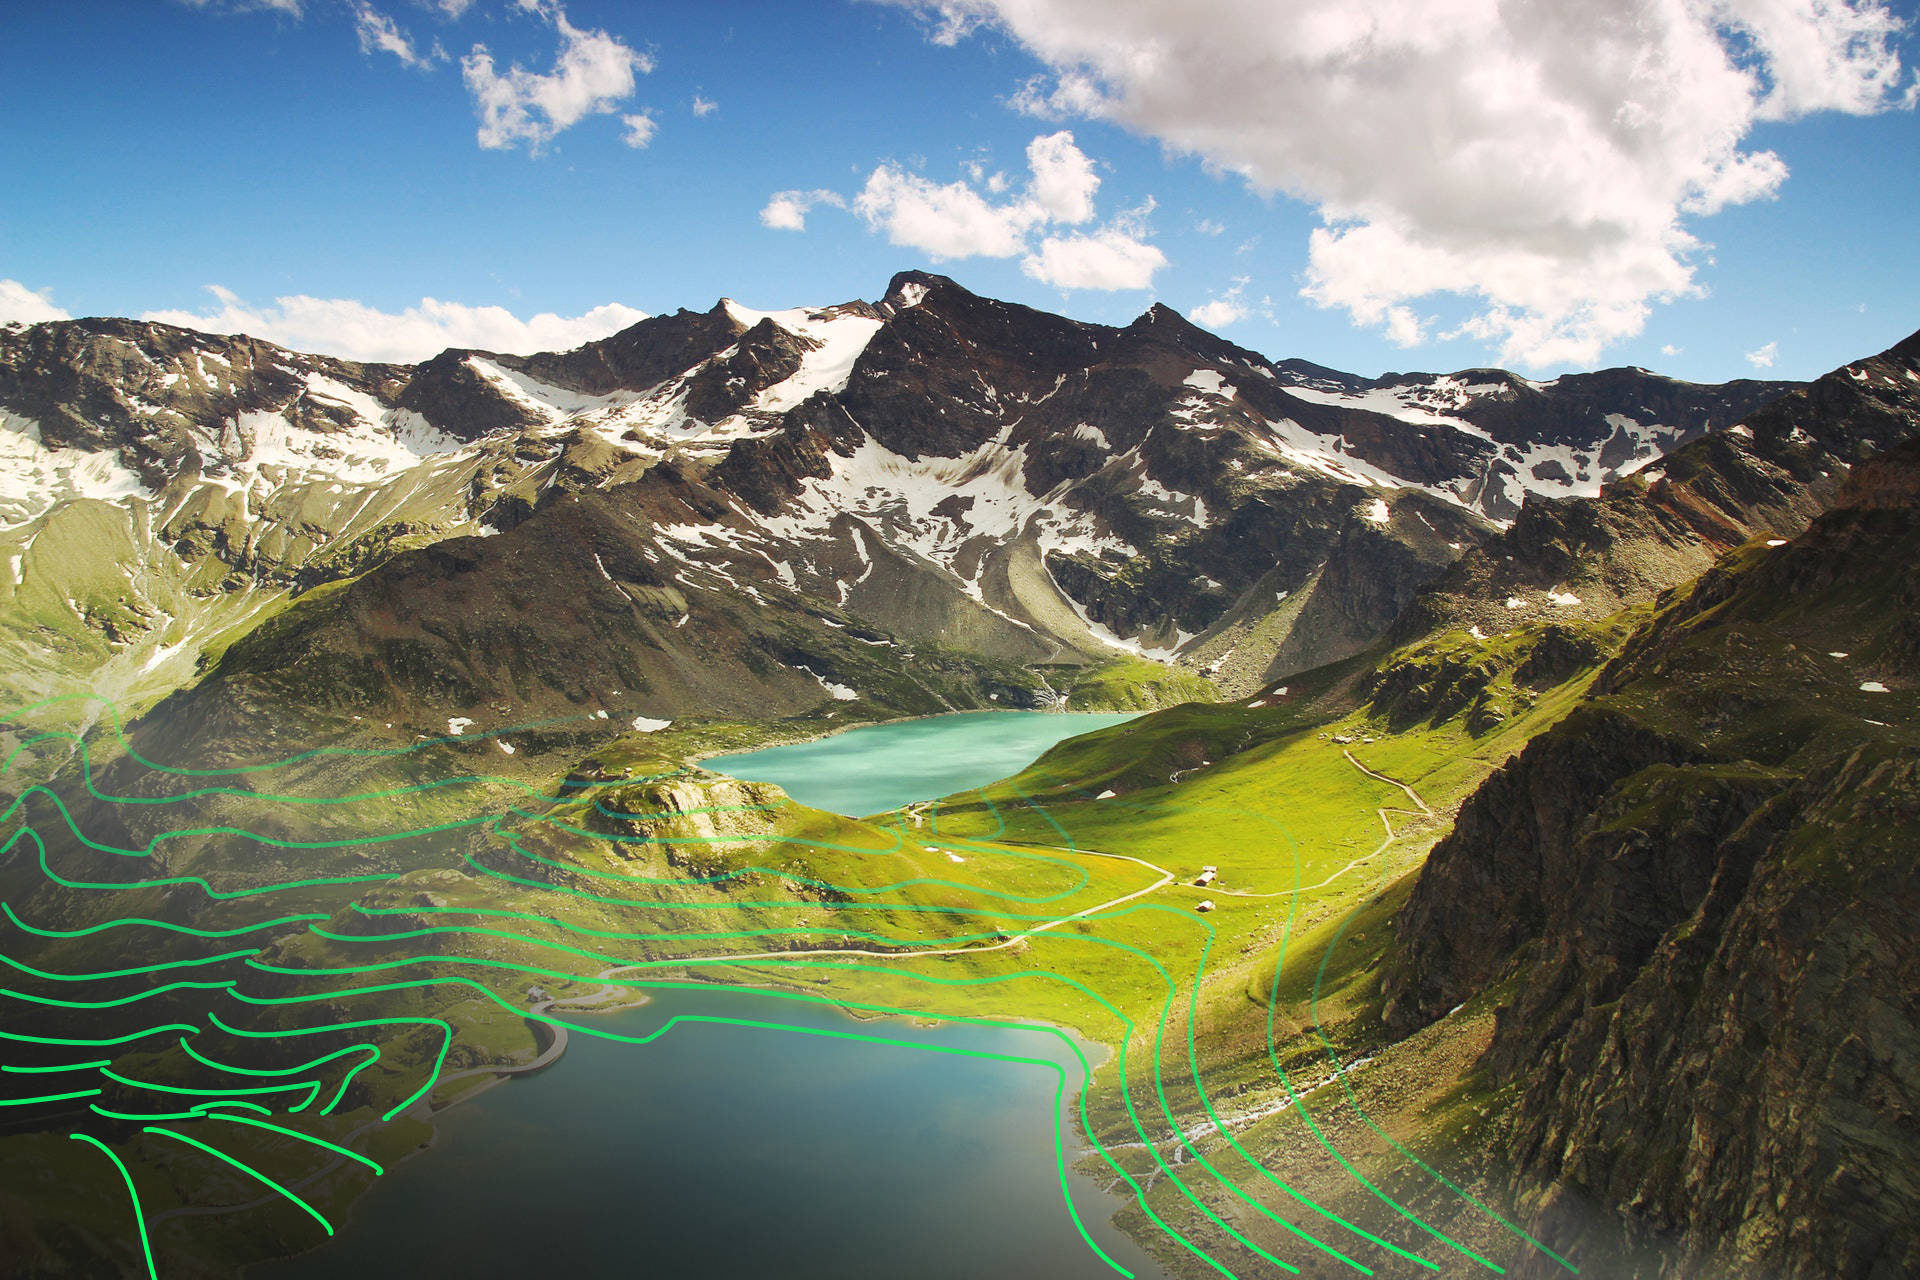 Photogrammetry Topographic-Aerial Mountains